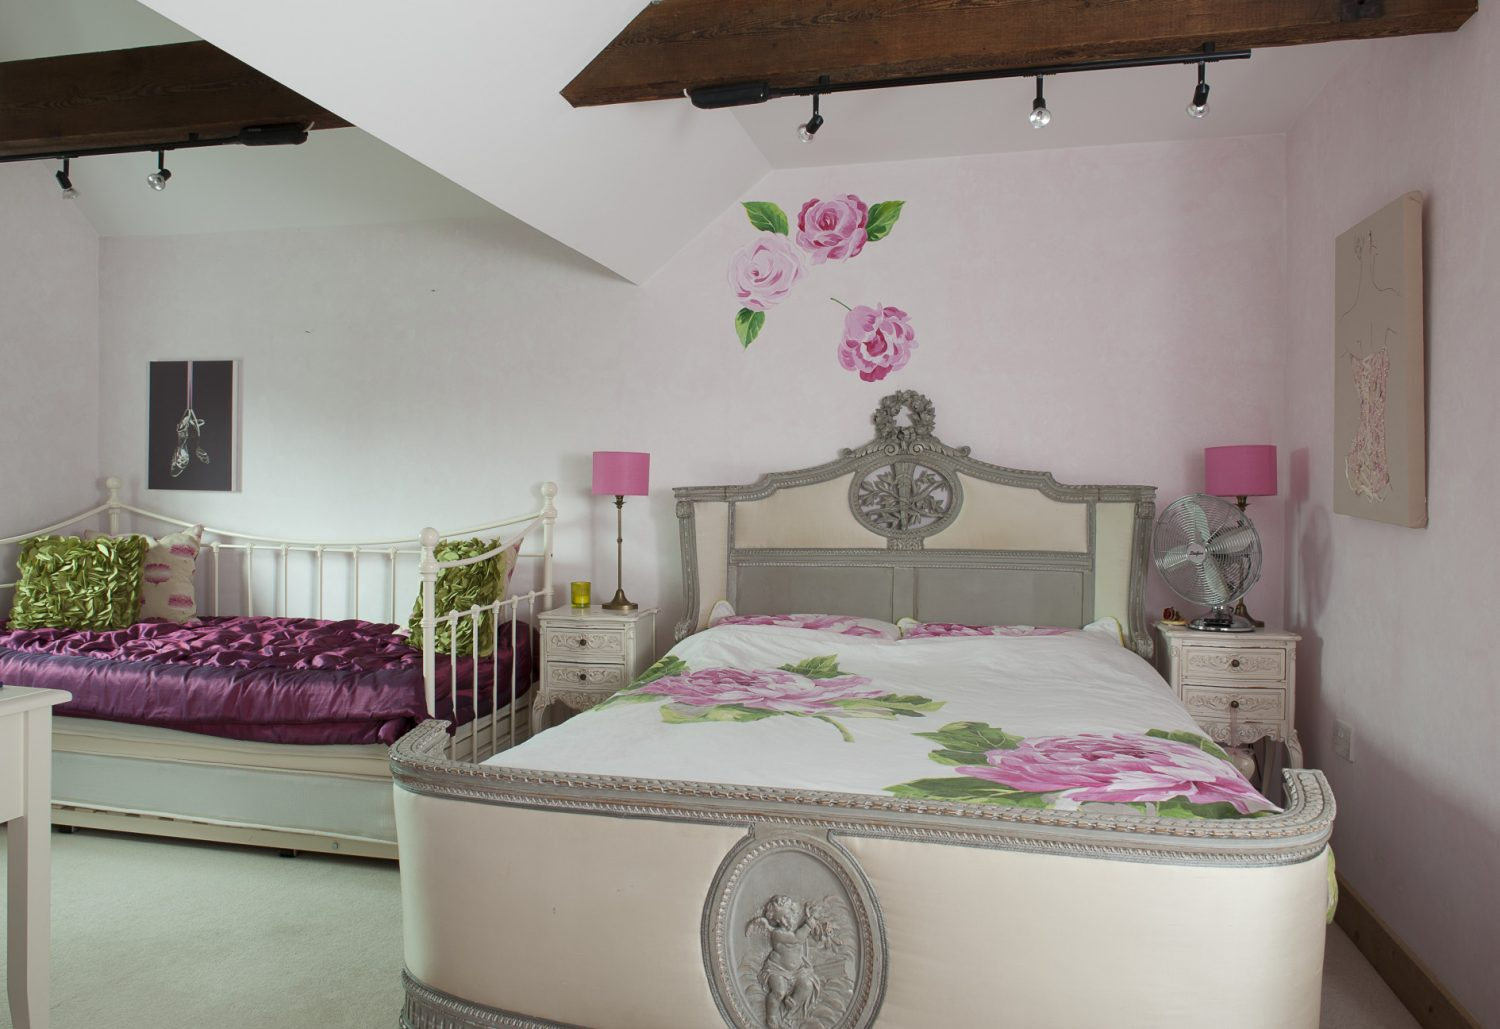 In direct contrast, daughter Maisie's room features an ornately carved 18th century French bed is dressed with a Designers Guild quilt